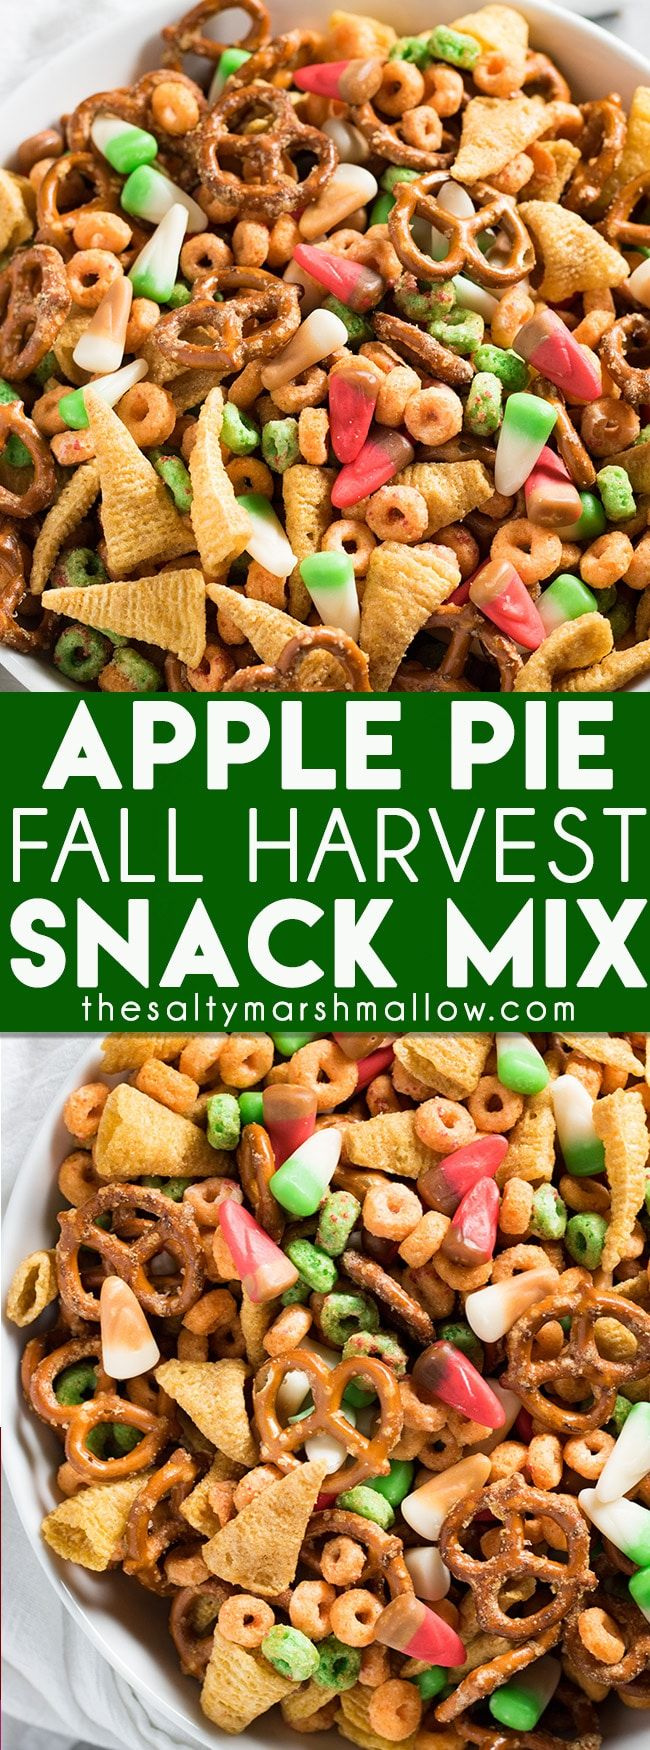 Apple Pie Fall Harvest Snack Mix - A delicious salty and sweet snack mix that is perfect for fall parties or Halloween!  This snack mix recipe is easy to make and full of apple jacks, bugles, pretzels, and apple pie candy corn and a sweet brown sugar cinnamon glaze!